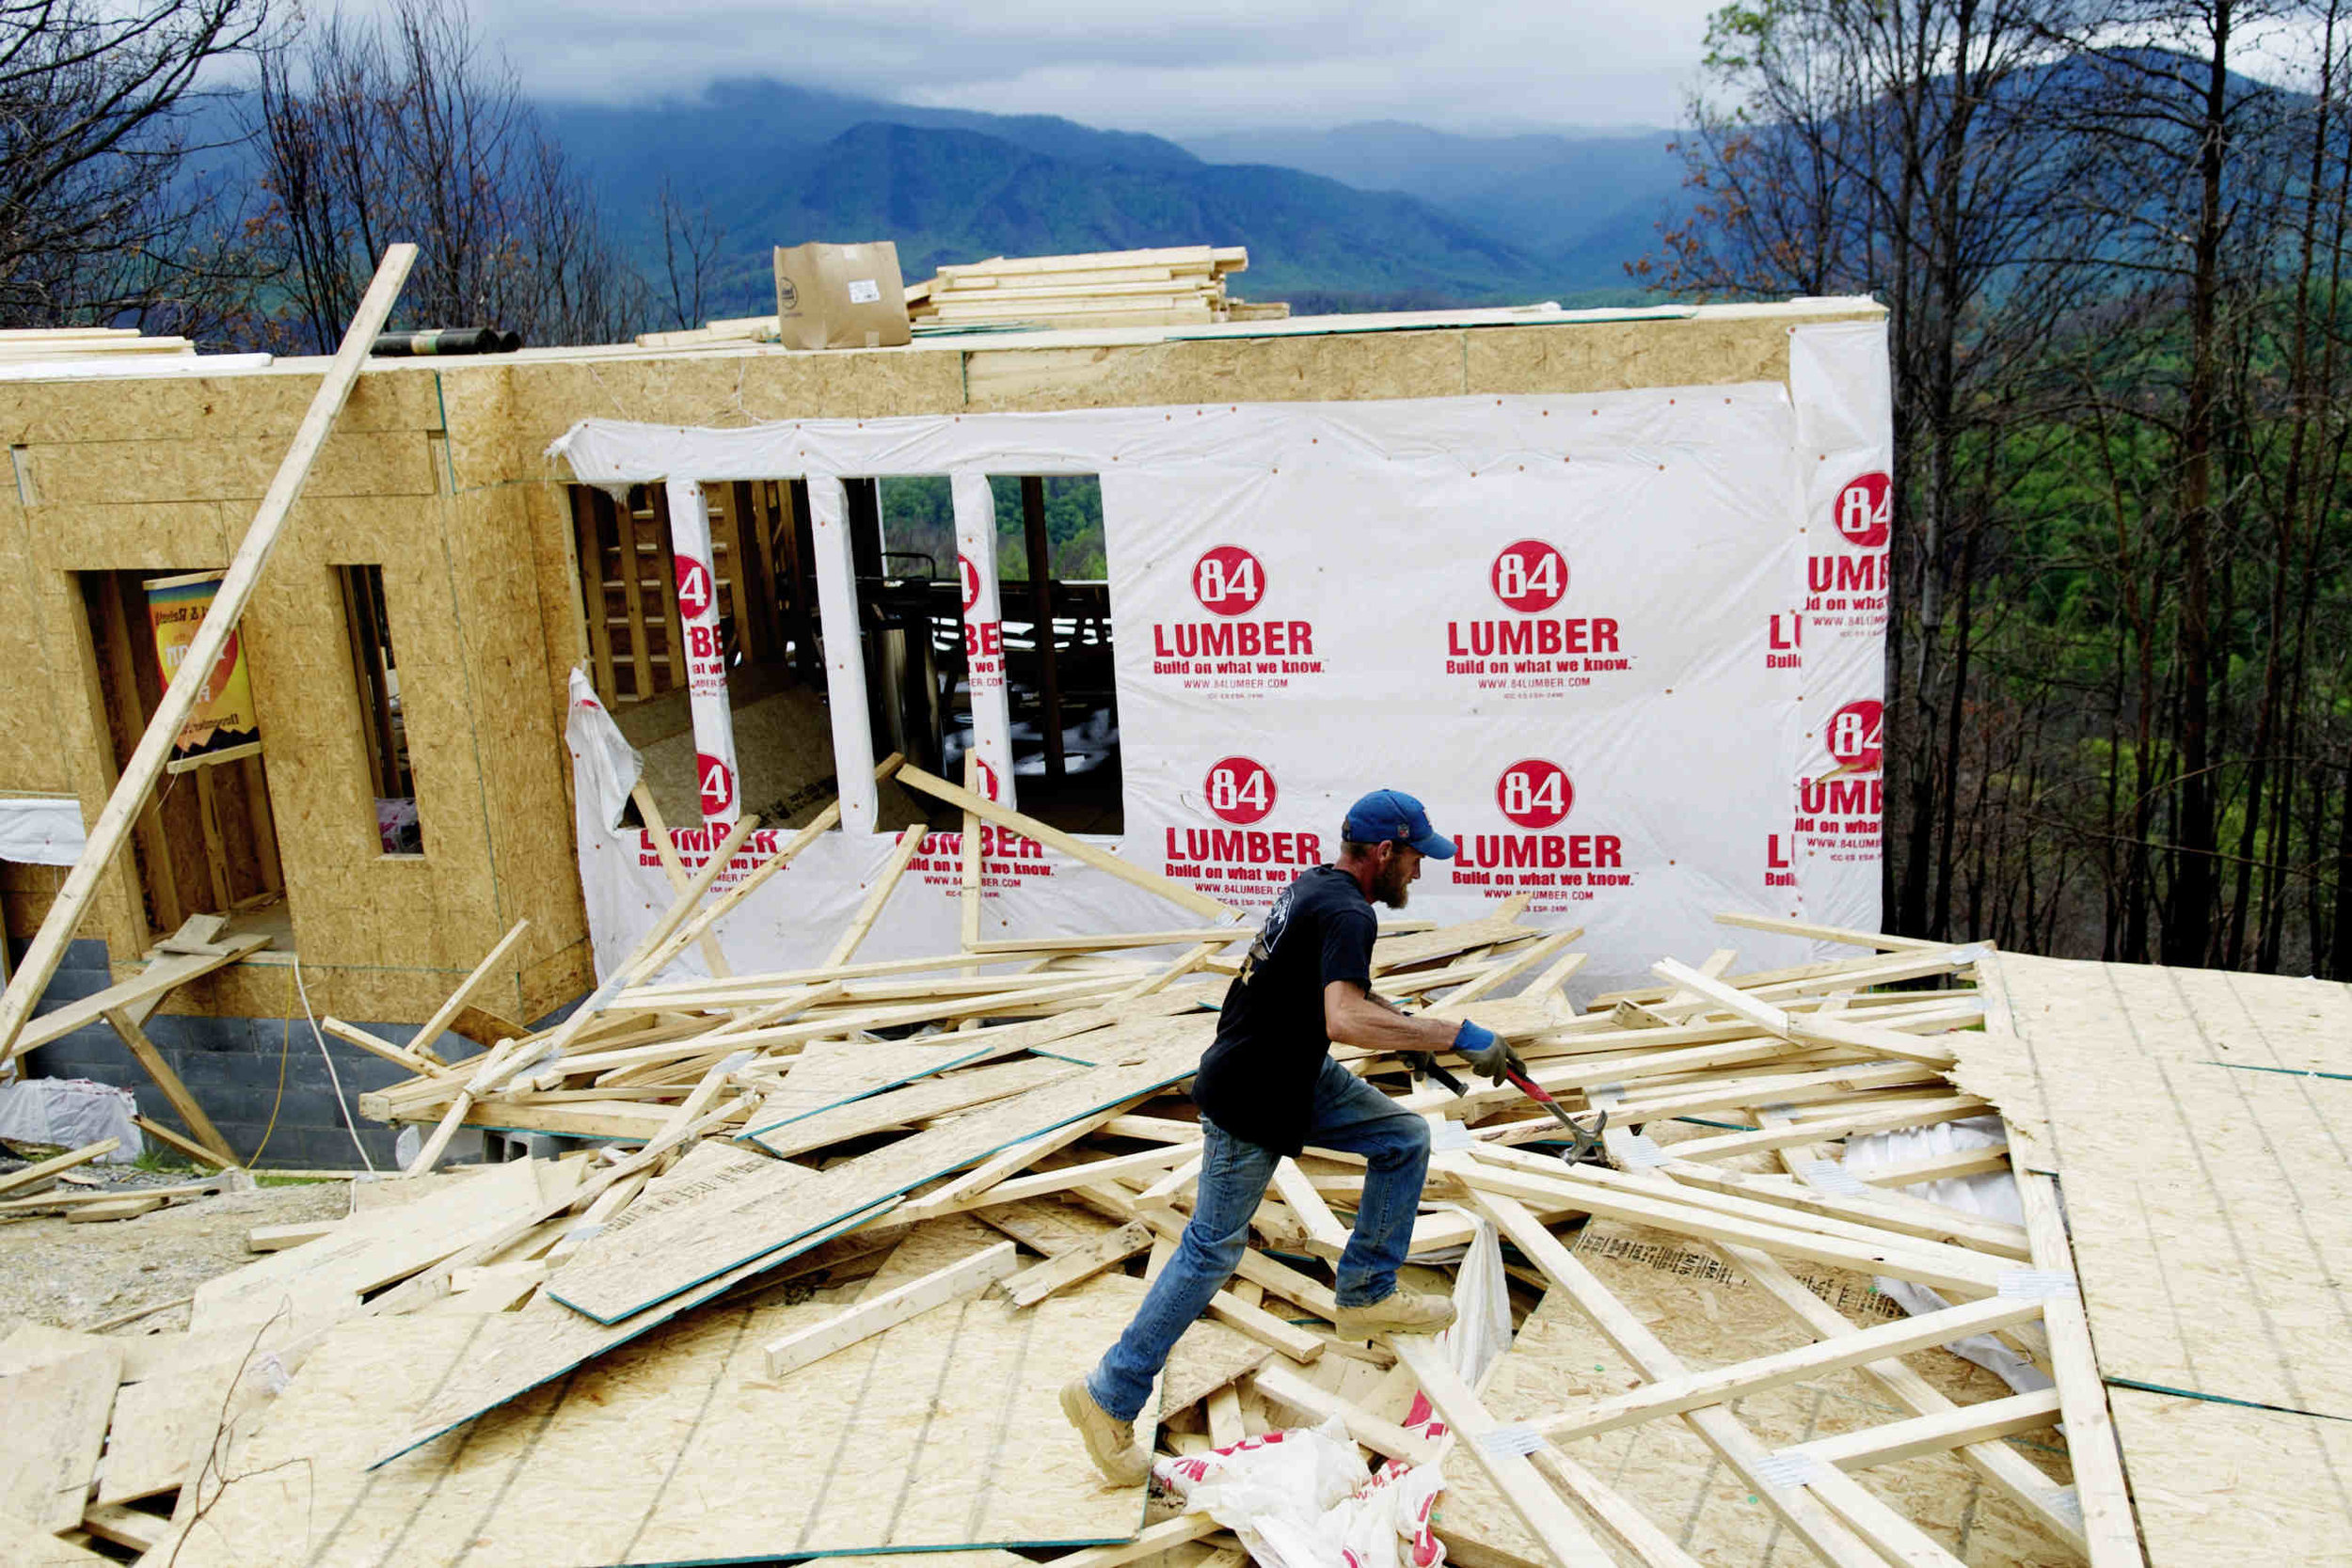 Ed Call, of American Home Builders, works on removing old roofing material that blew off of Glenn Warren's new home under construction on Wiley-Oakley Drive after a strong windstorm hit the area in Gatlinburg, Tennessee on Friday, May 5, 2017.